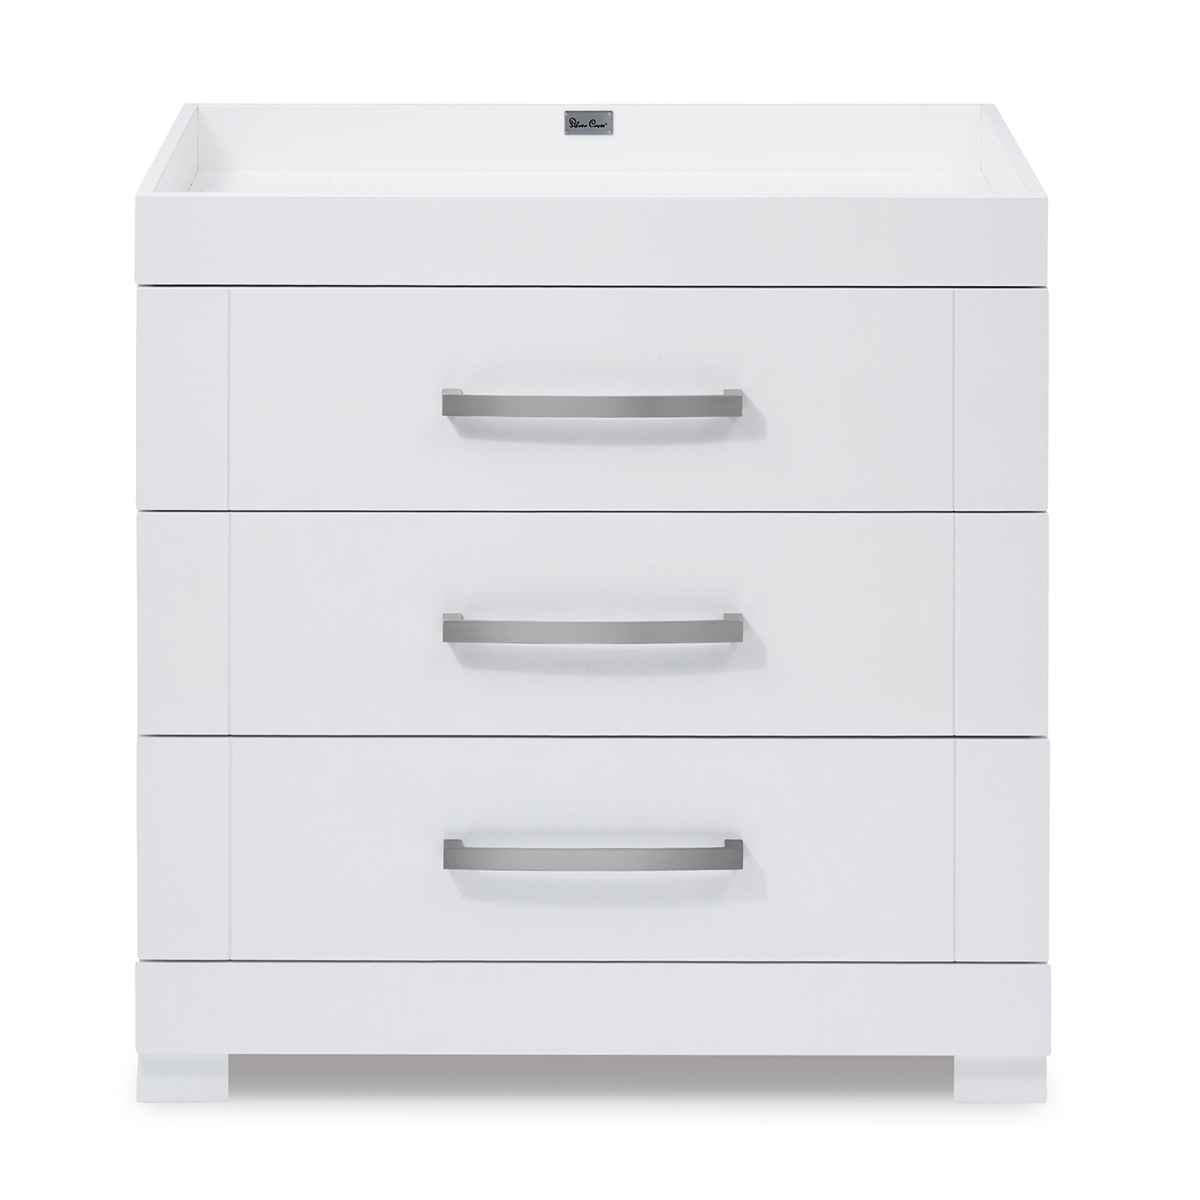 Notting Hill Dresser Changer by Silver Cross